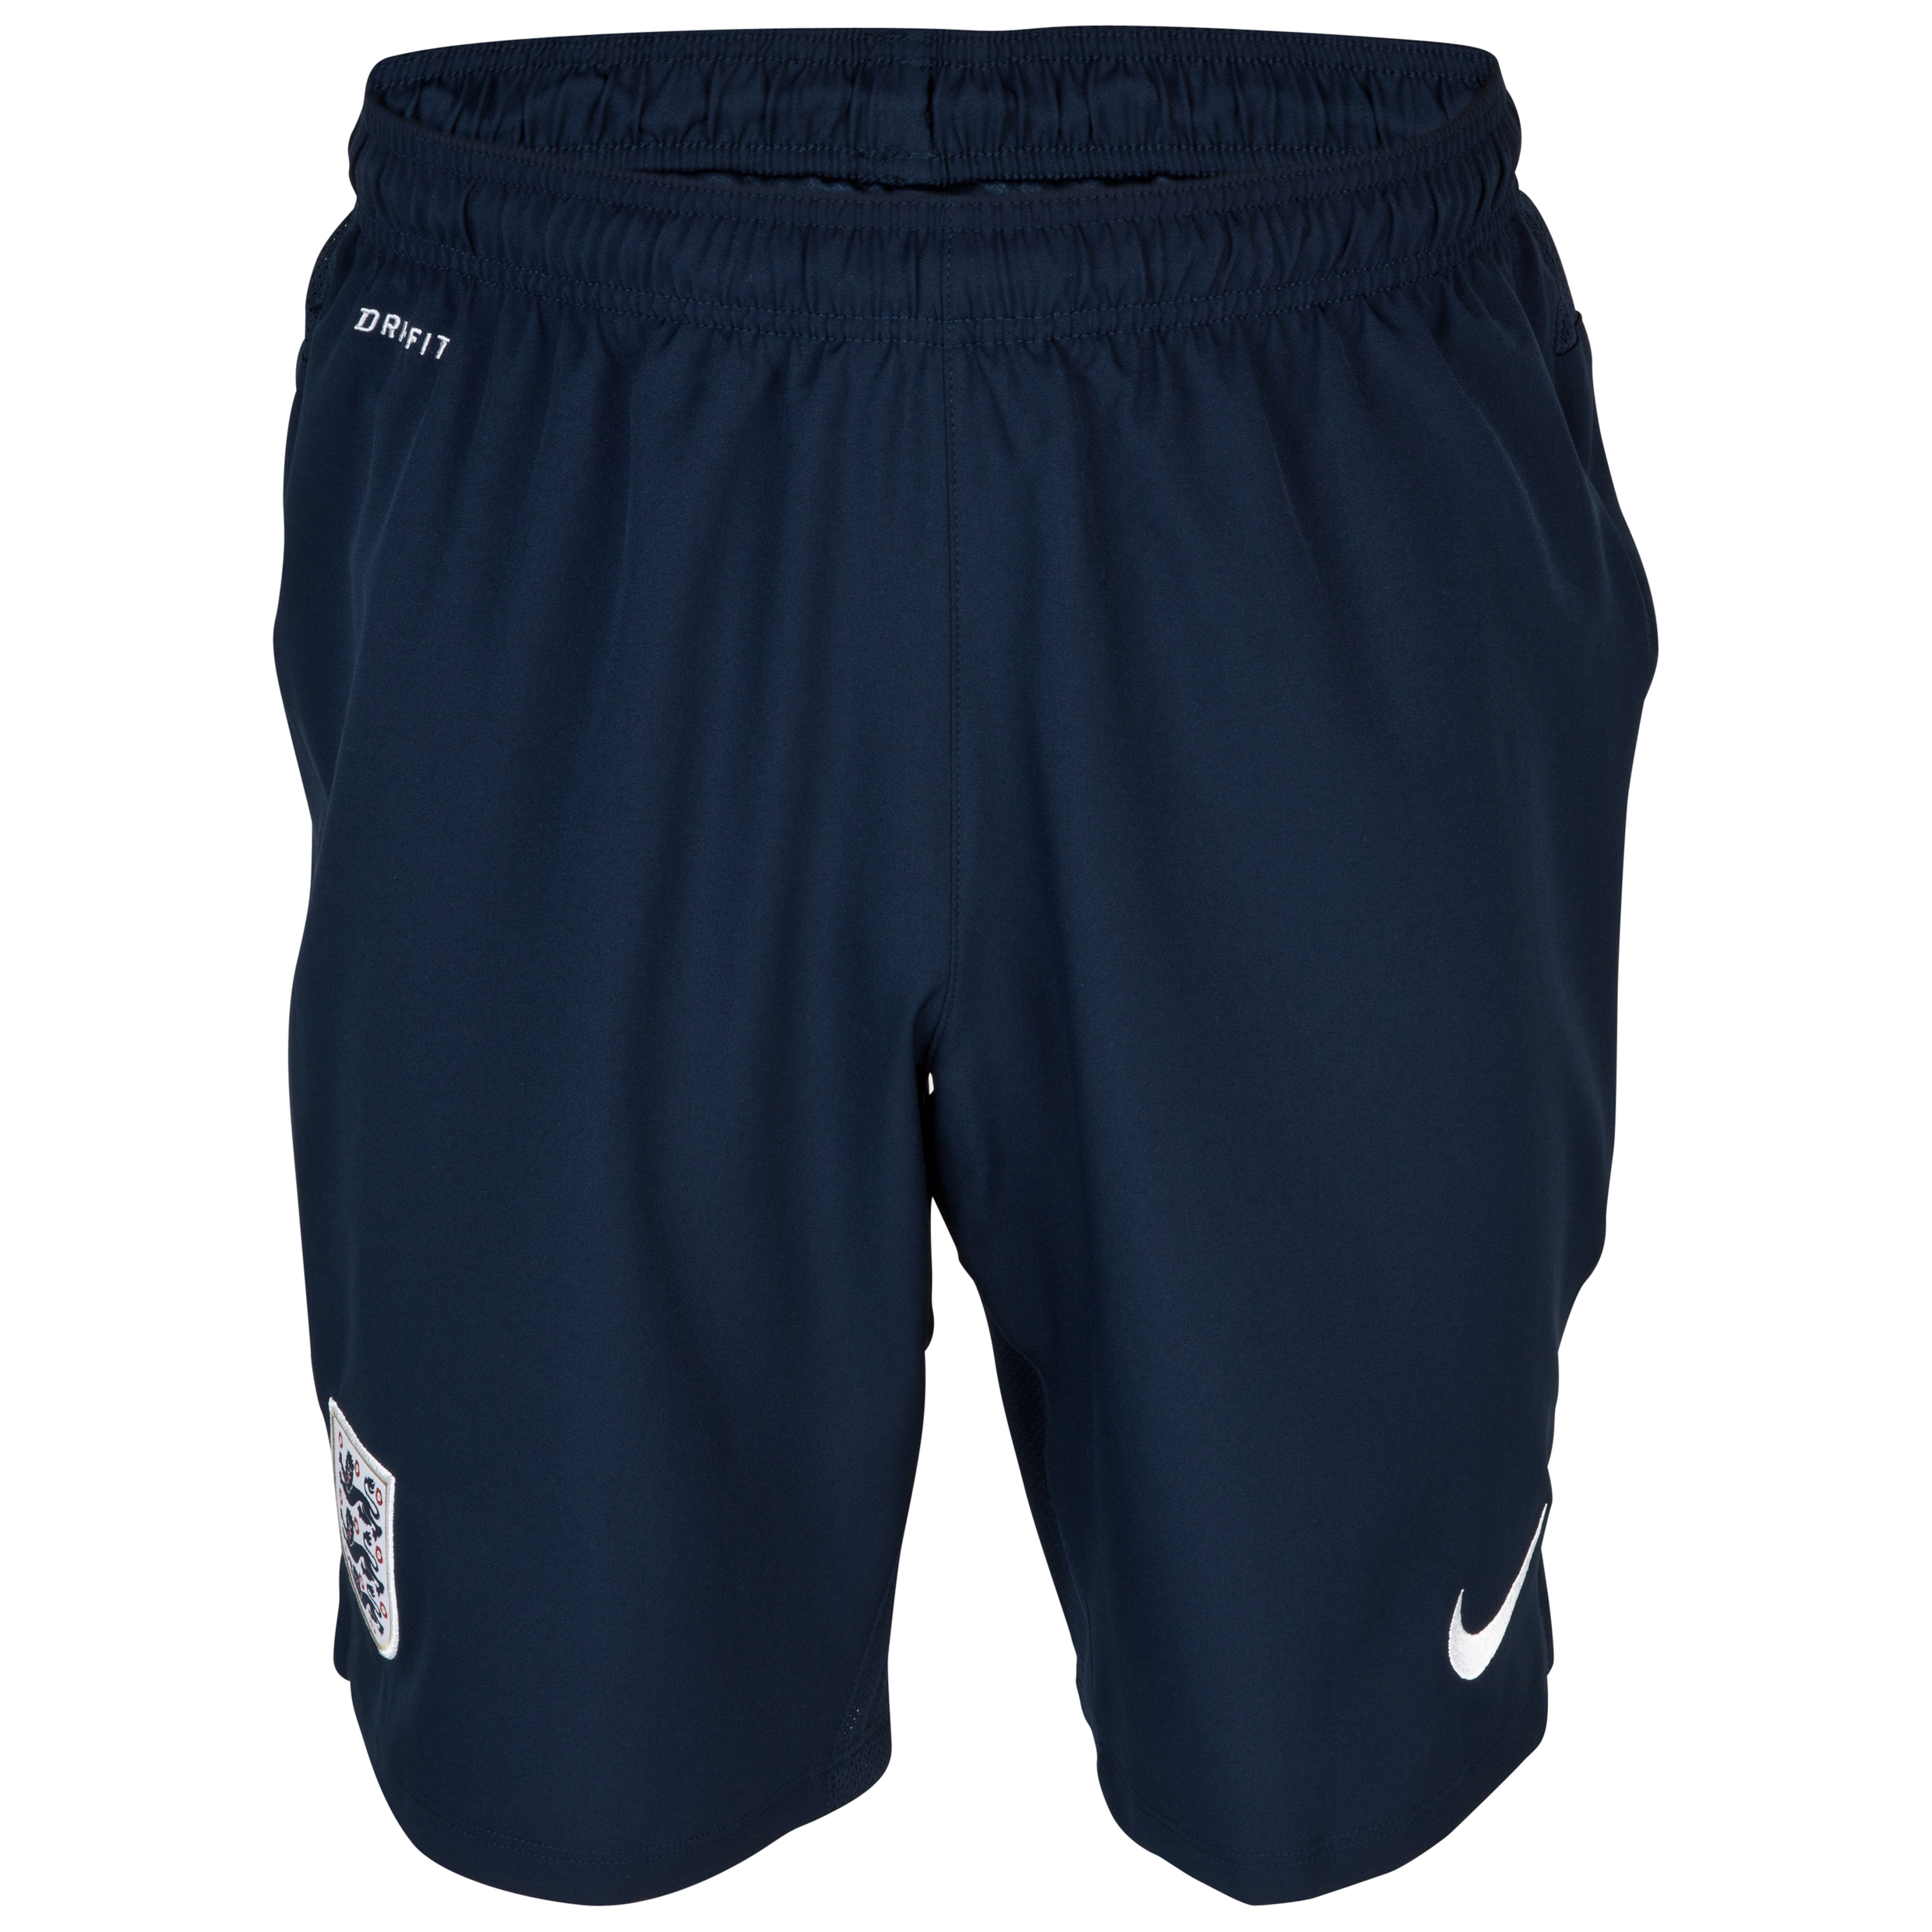 England Home Short 2013/14 - Youth Navy